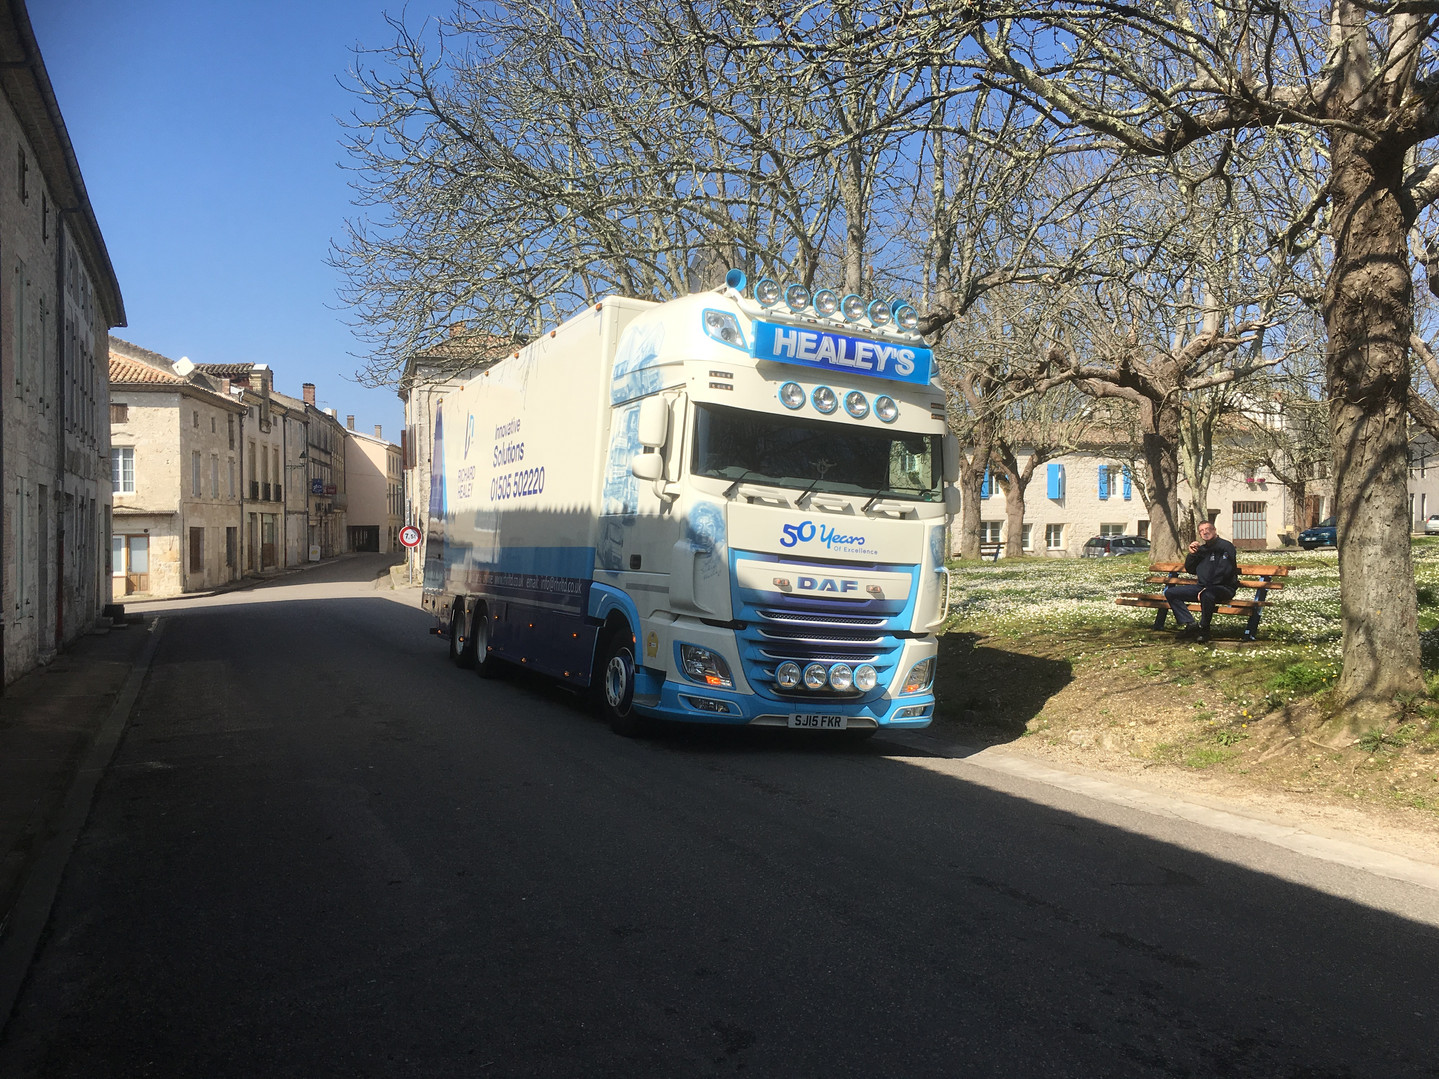 Richard Healey Removal truck in Netherlands